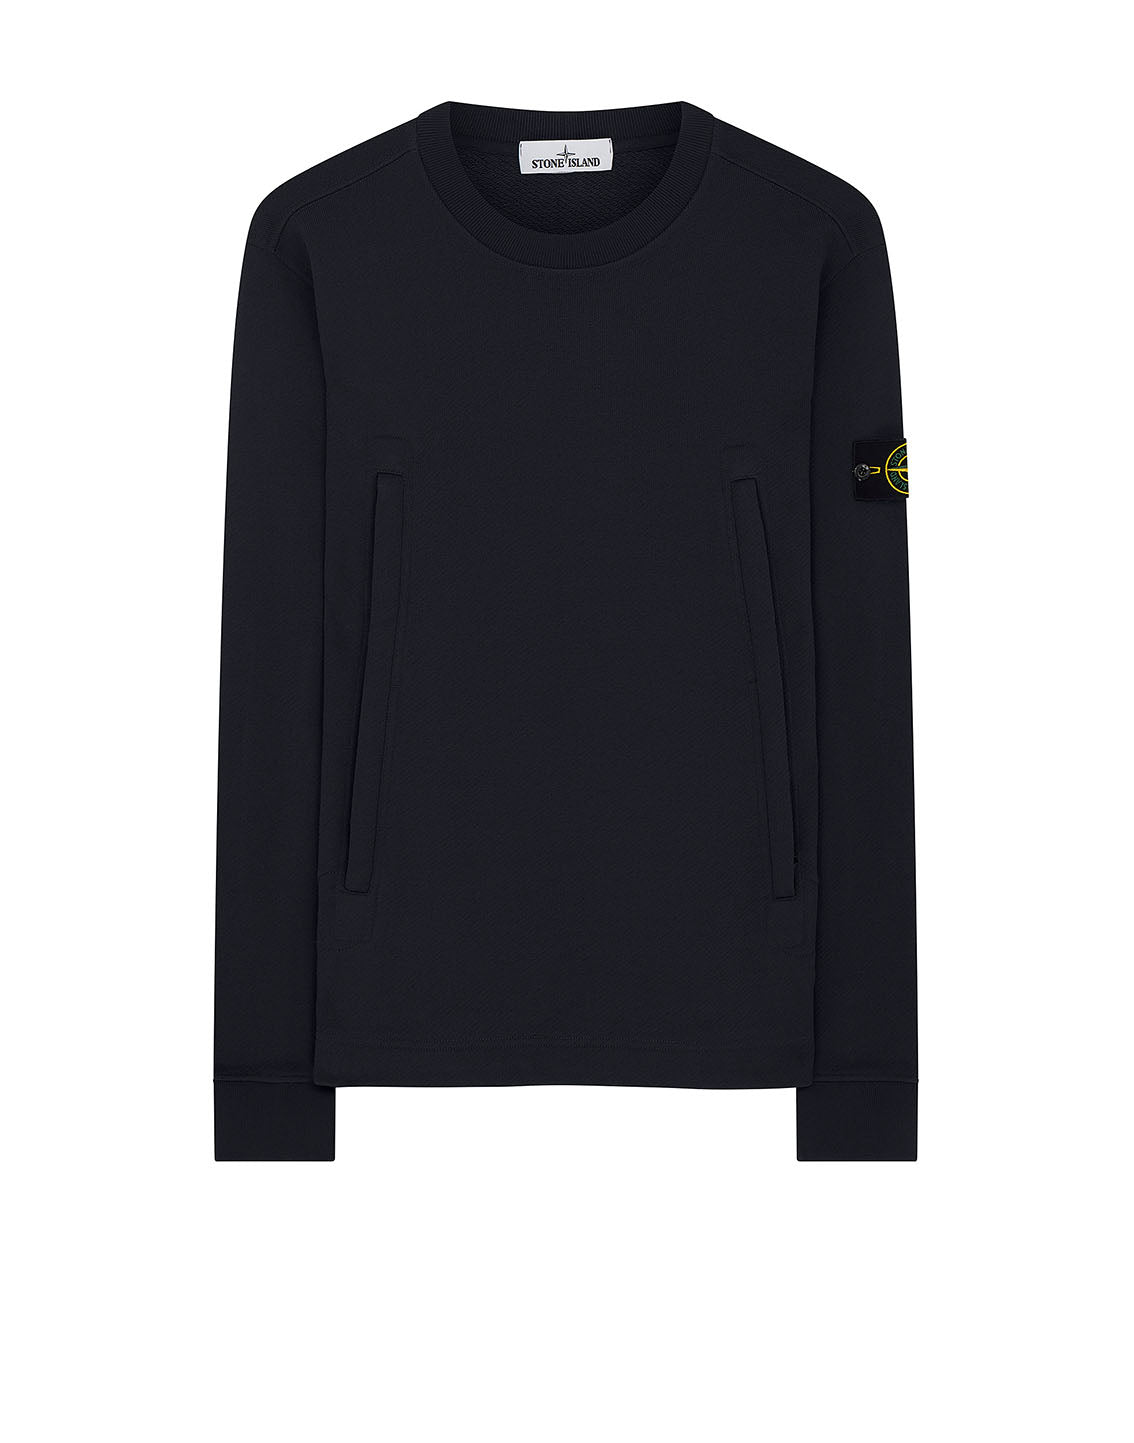 60740 Sweatshirt in Black